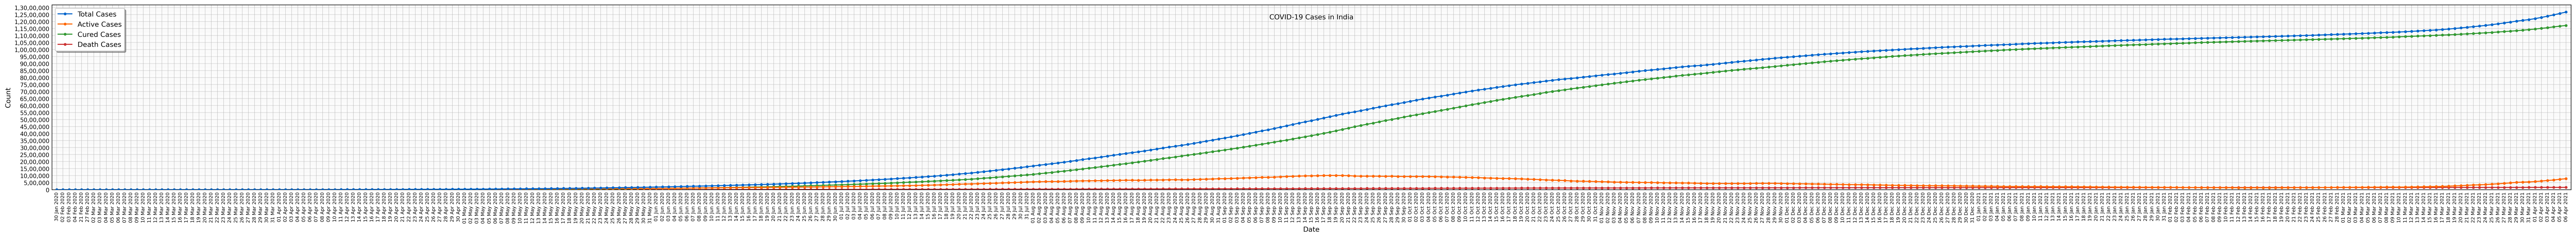 India COVID-19 total cases graph in linear scale